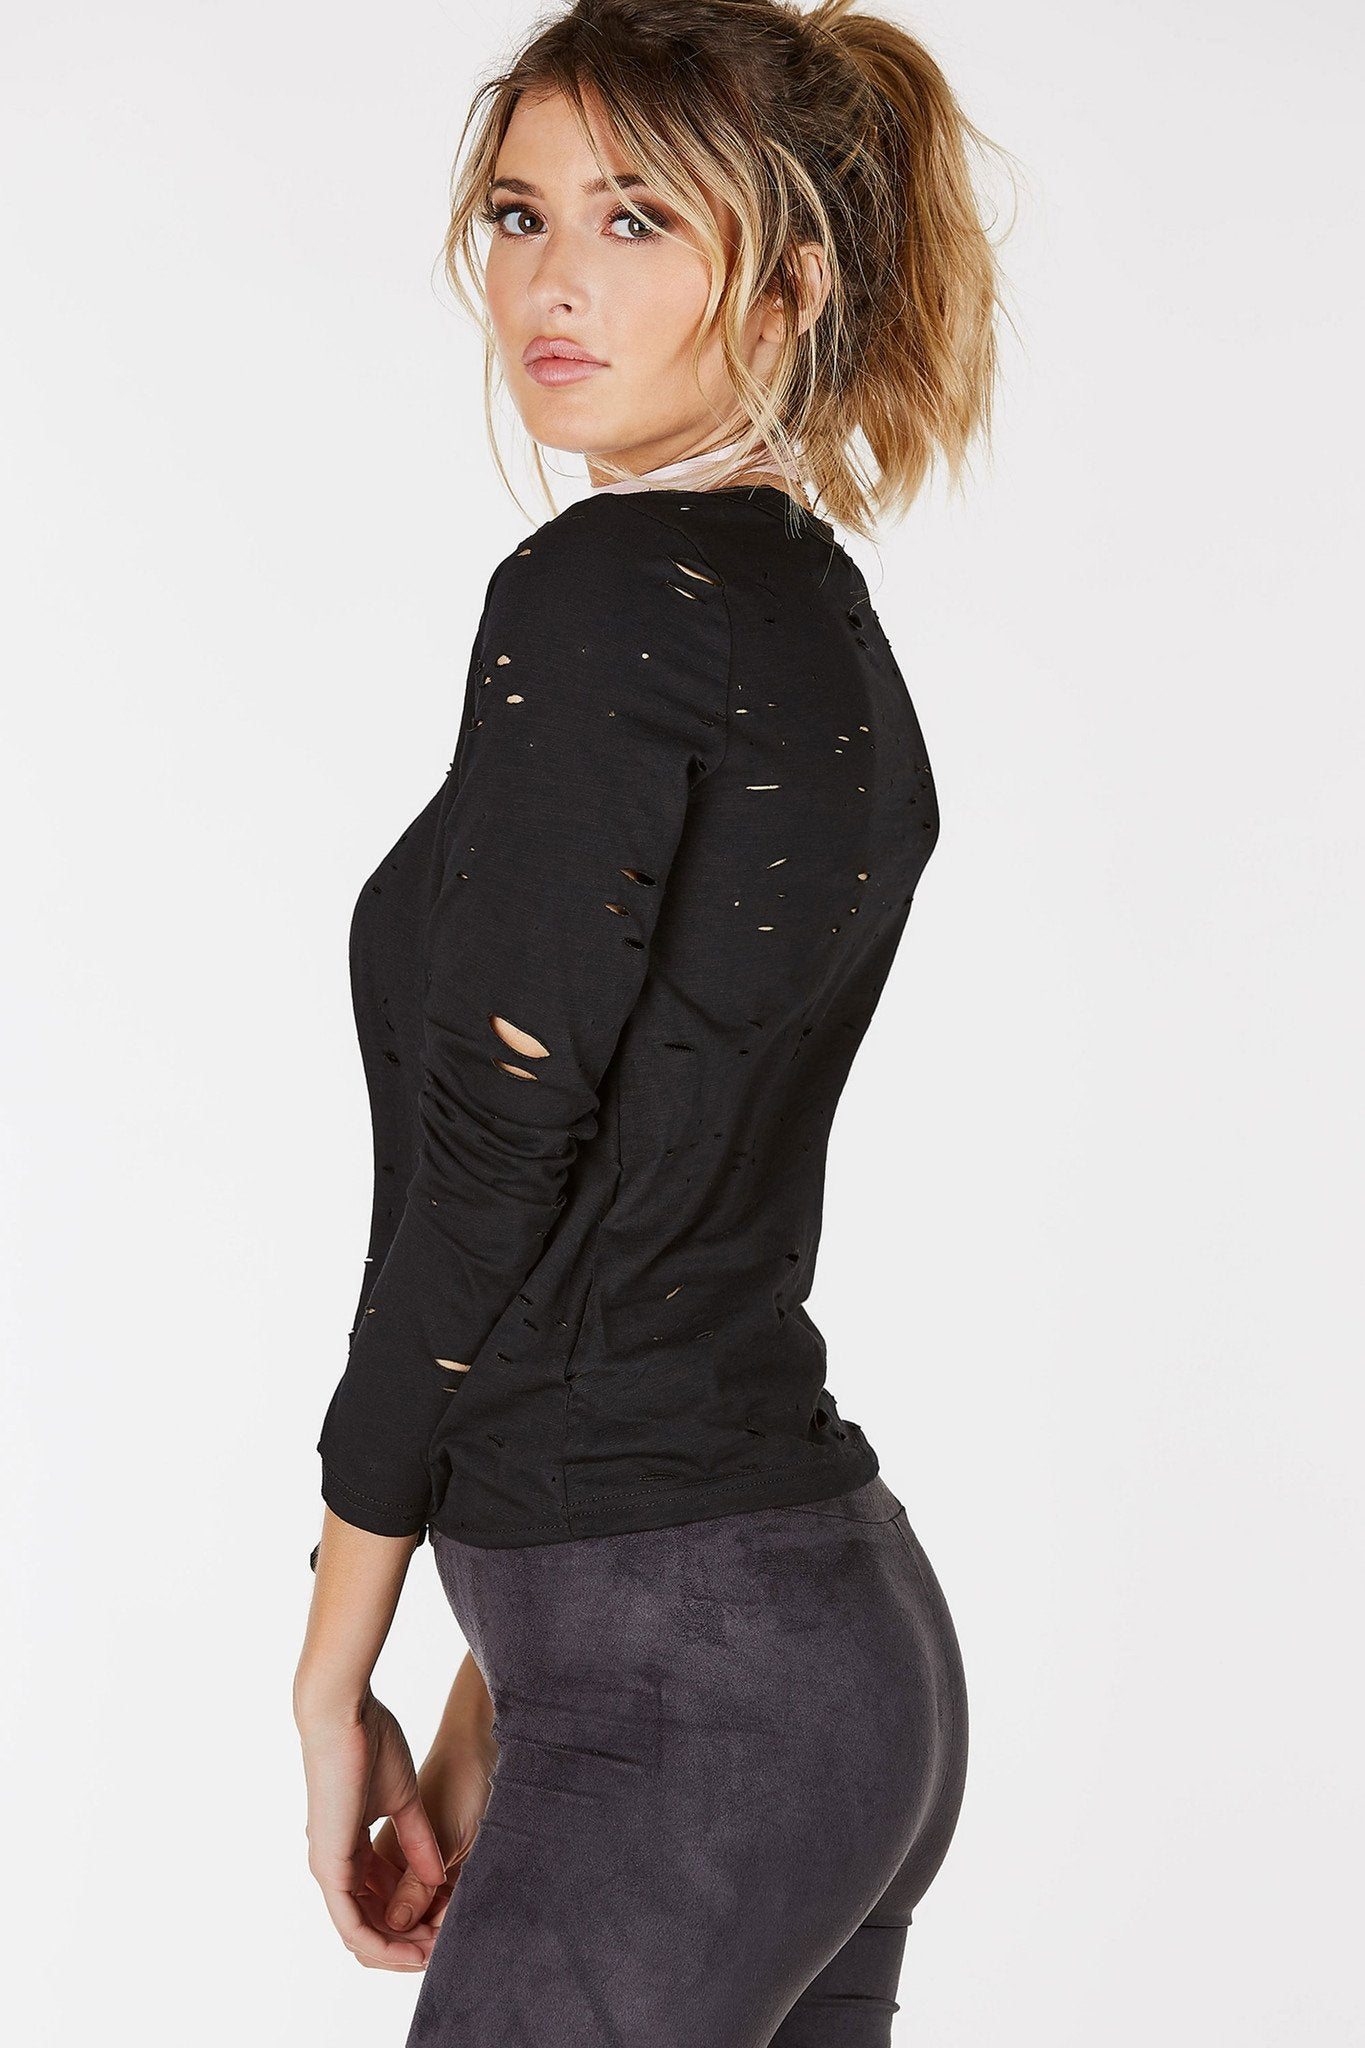 Unruly Distreed Long Sleeve Top